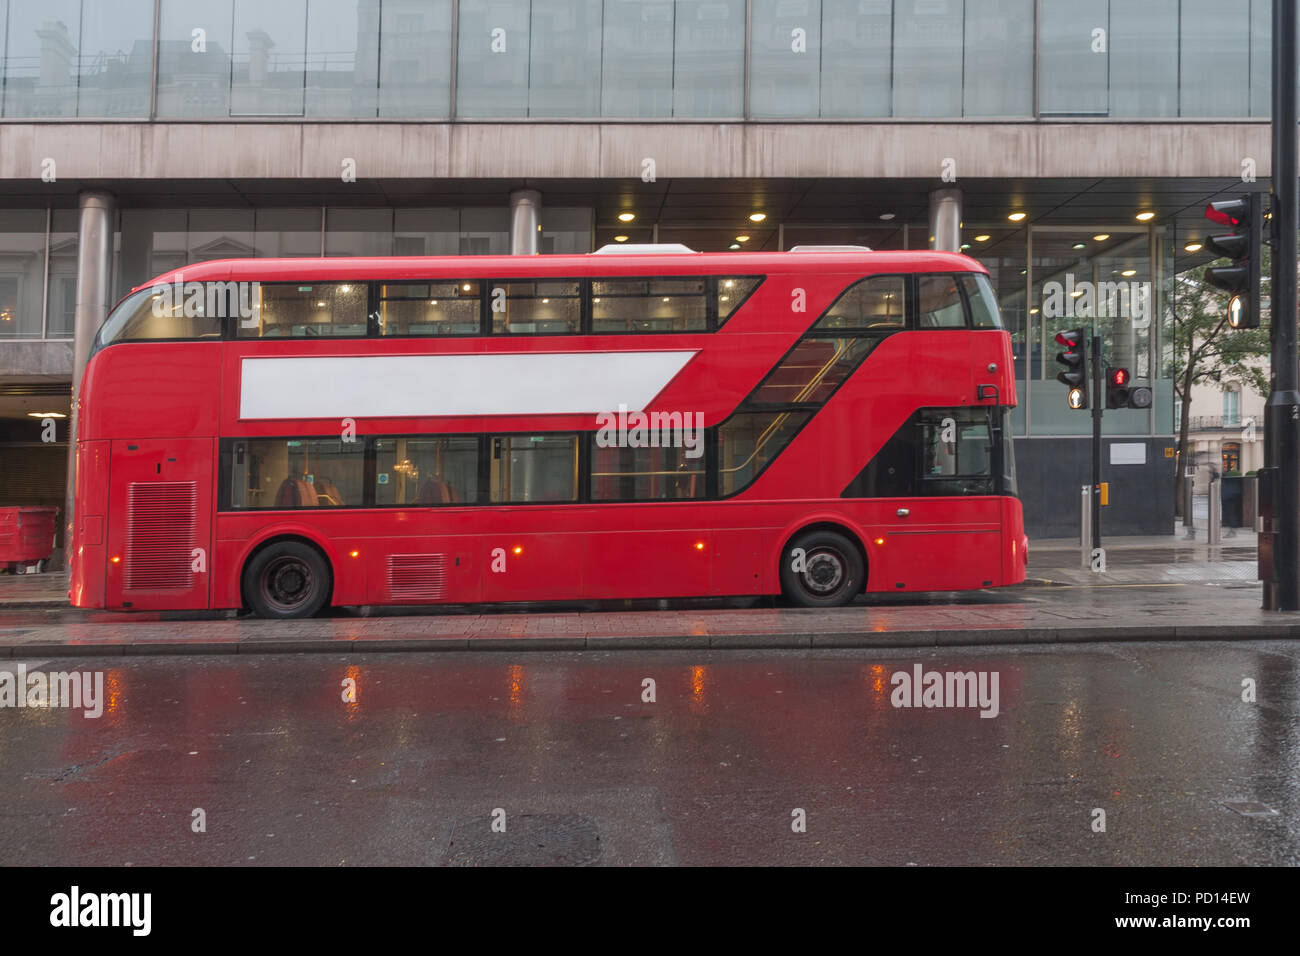 Public traffic, red double decker bus on Pall Mall street  in London, United Kingdom - Stock Image